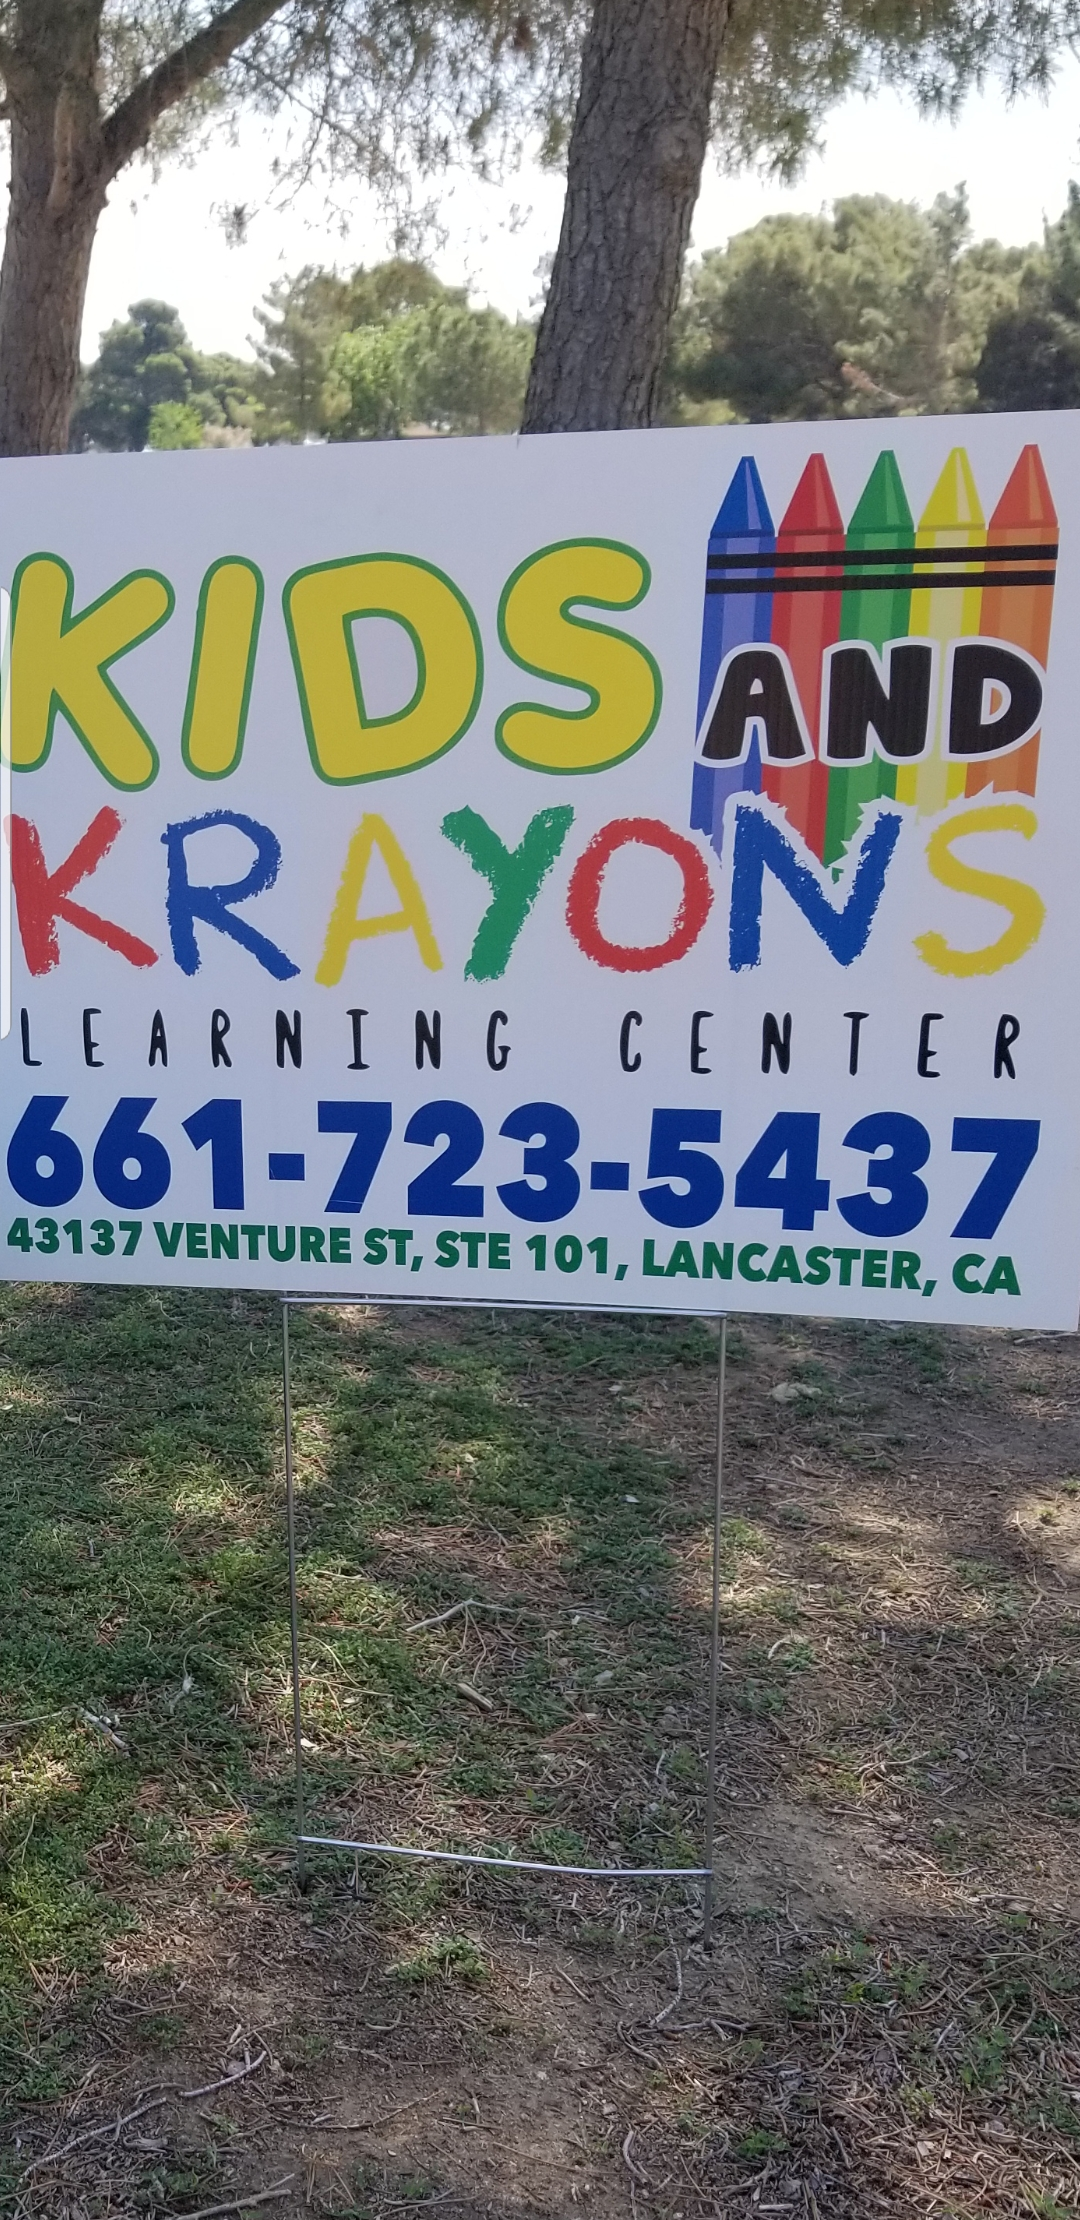 KIDS AND KRAYONS LEARNING CENTER